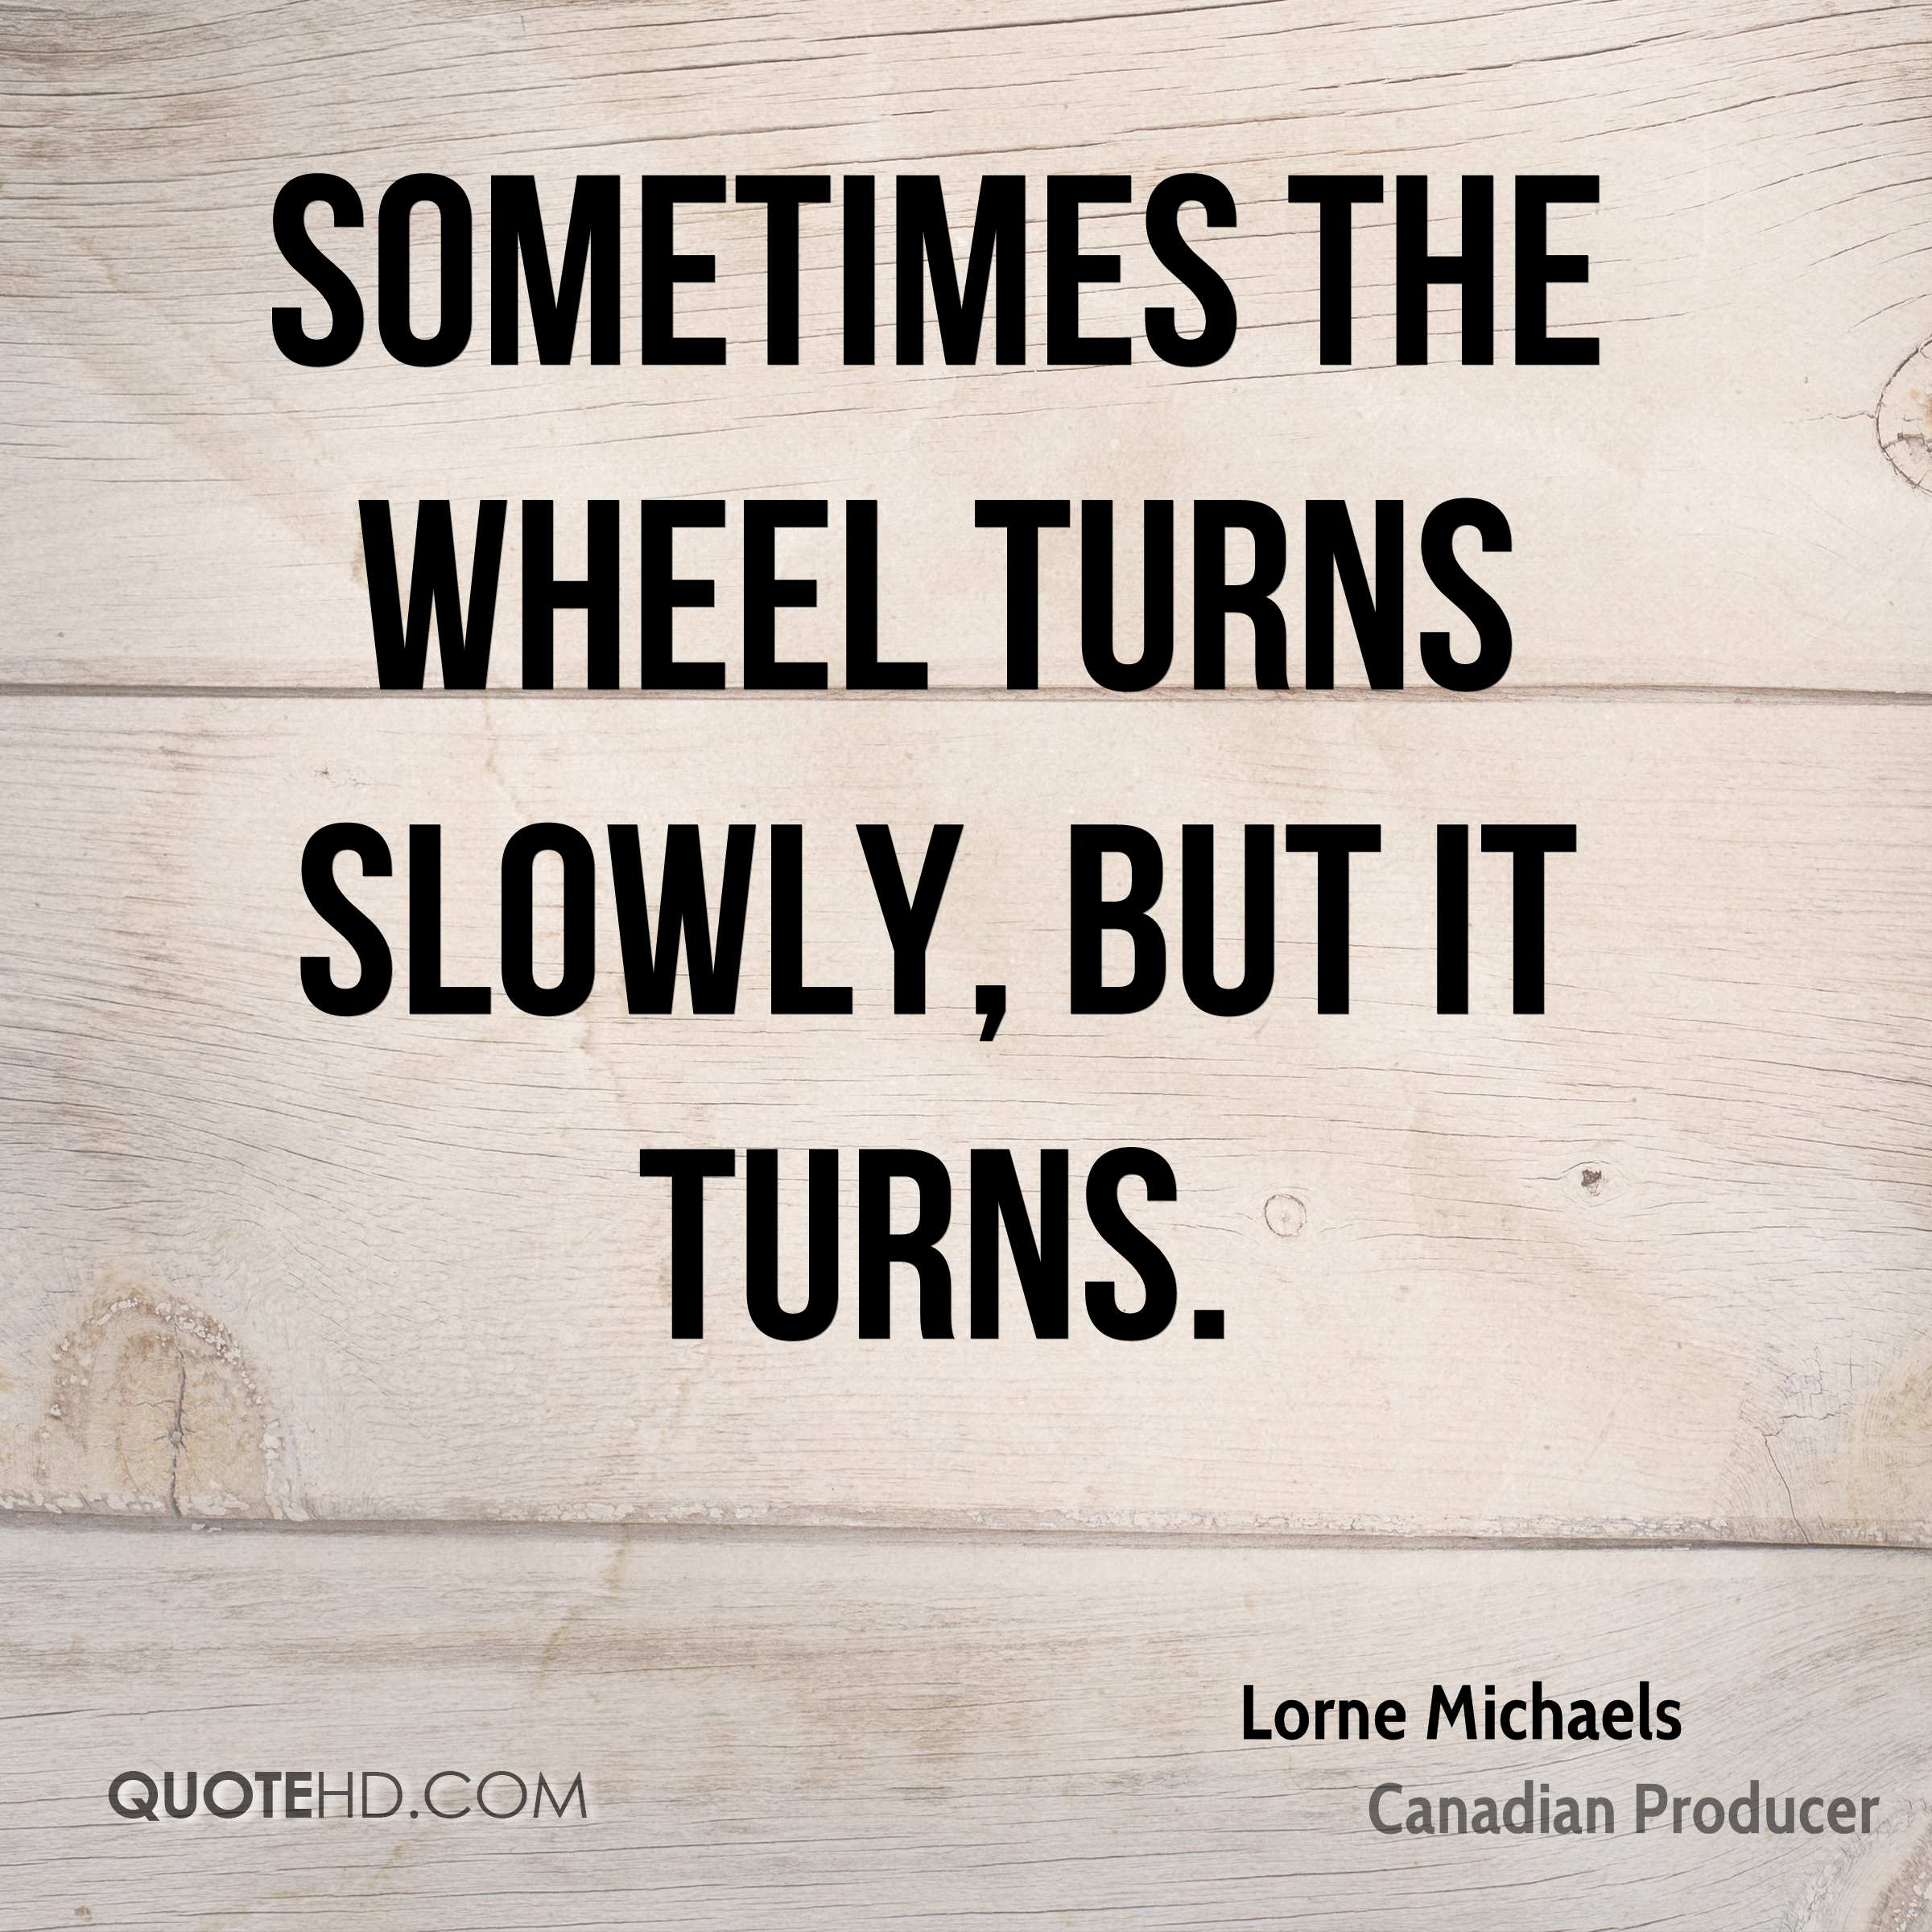 Sometimes the wheel turns slowly, but it turns.